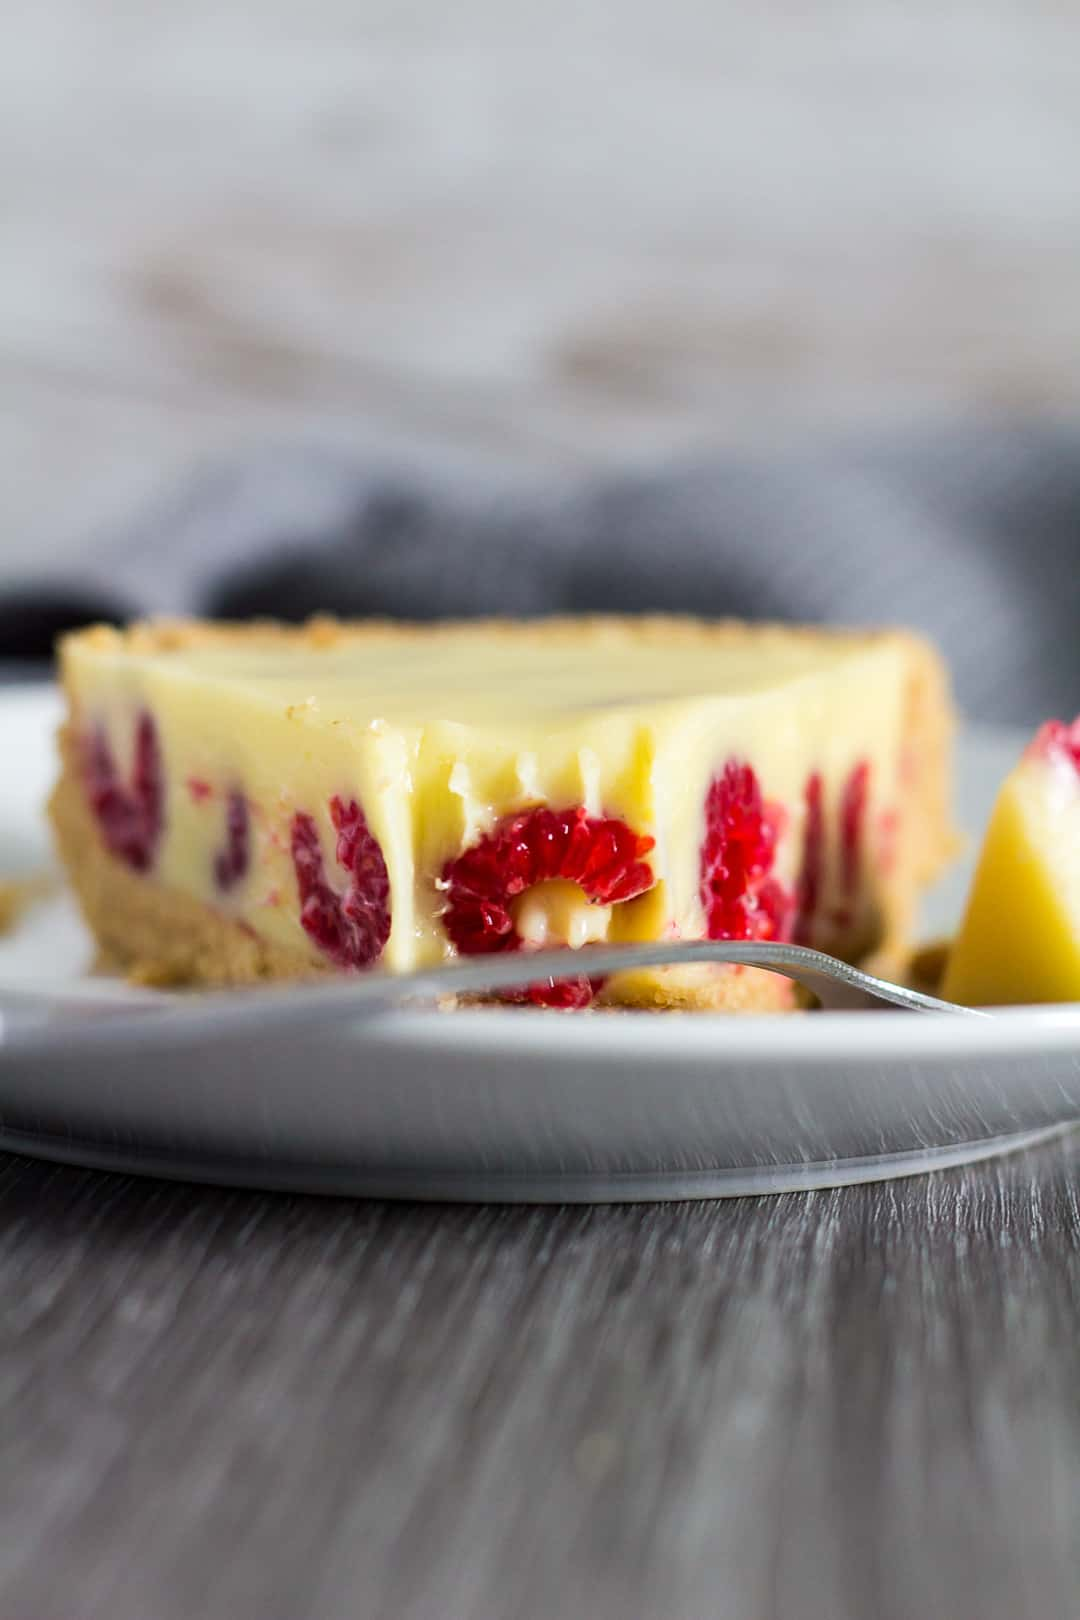 Slice of White Chocolate Raspberry Tart served on white plate with a fork.